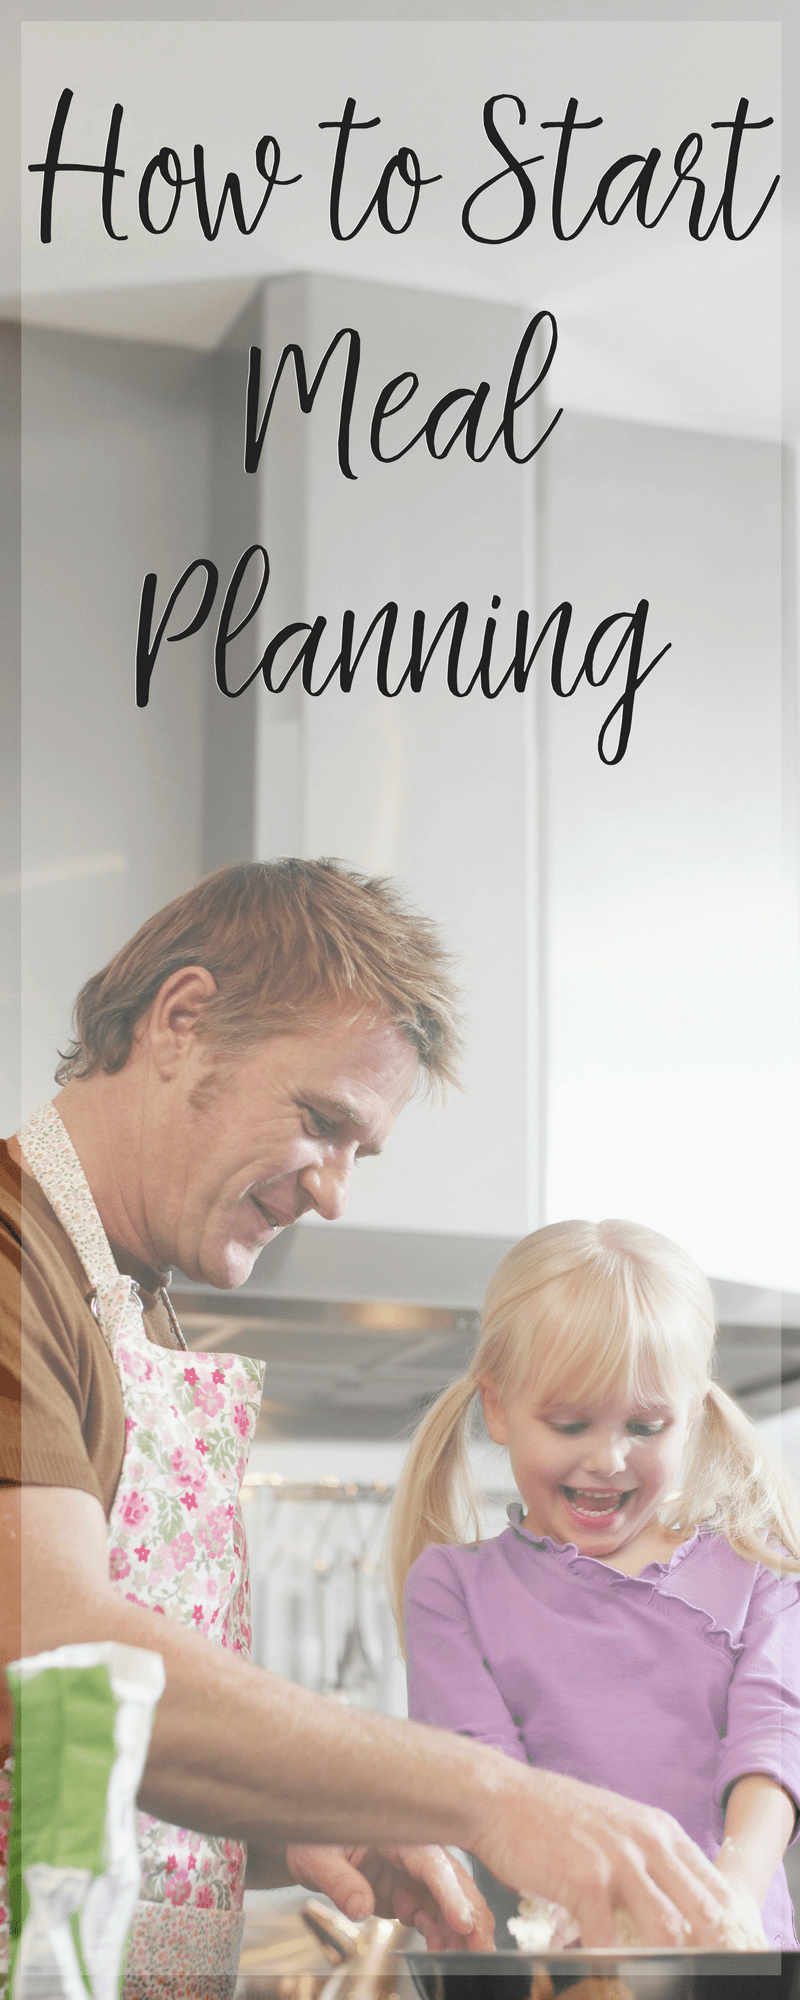 A little bit of plannning can go a long way when it comes to reducing the overall stress of parenting. Here are a few tips for how to start meal planning.